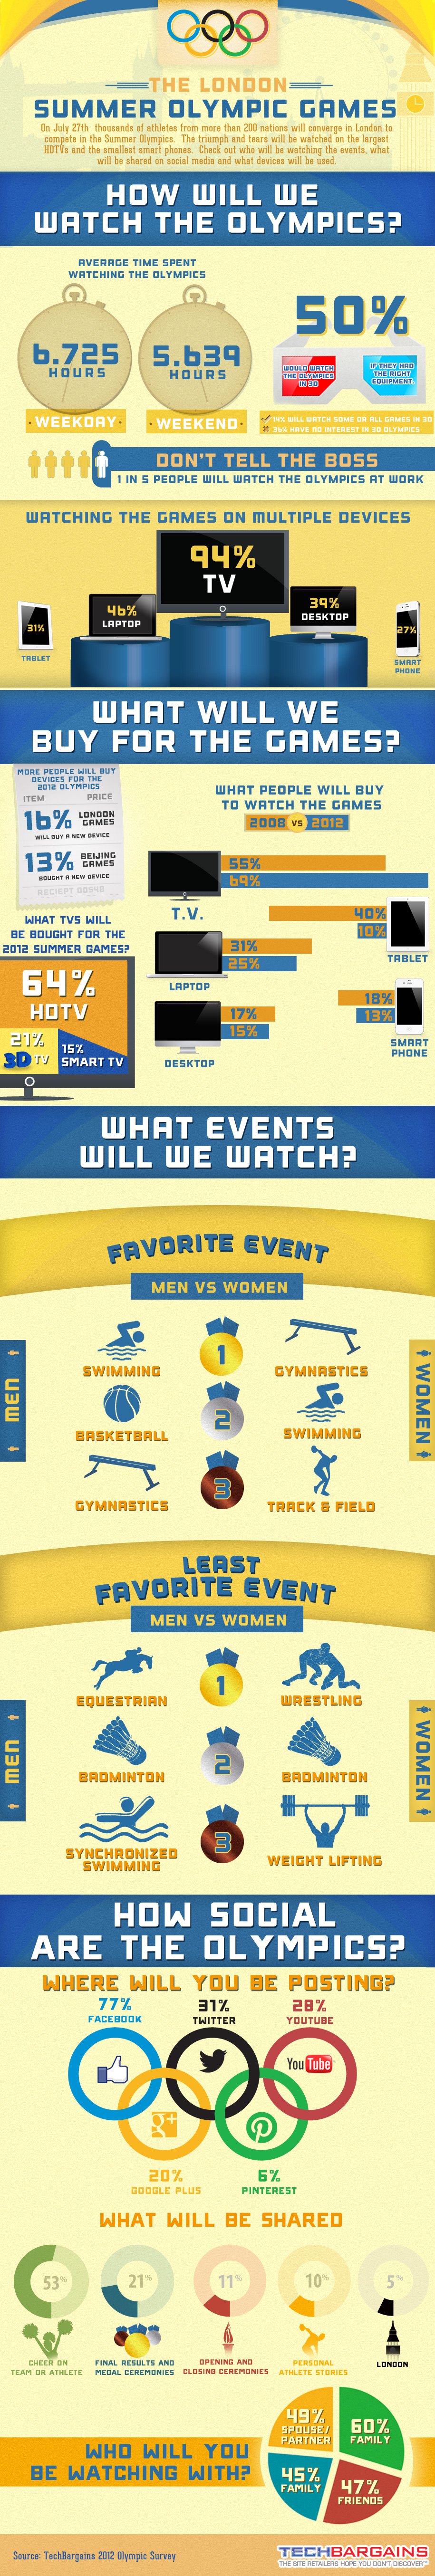 Social Media And The Olympics Infographics image olympics infographic final with source1